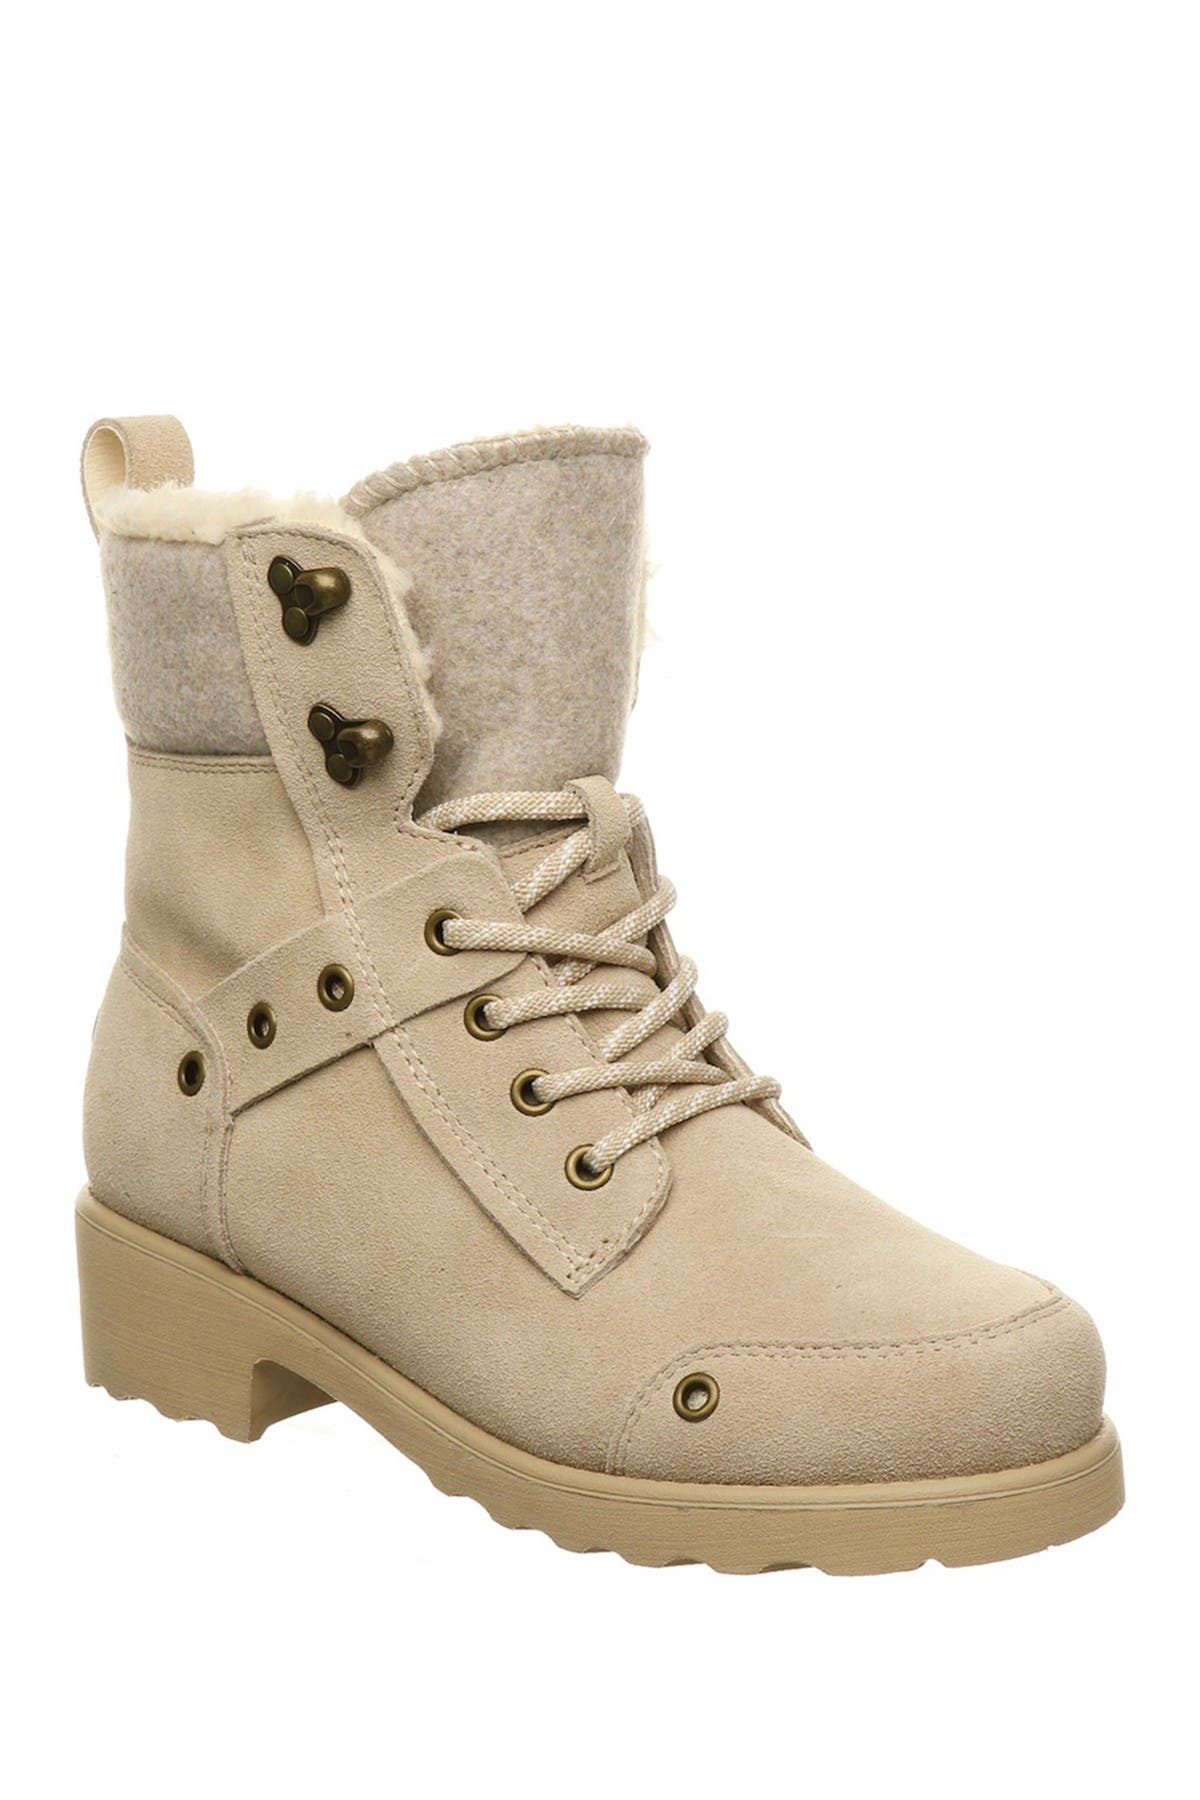 Image of BEARPAW Alicia Faux Shearling Lace-Up Boot